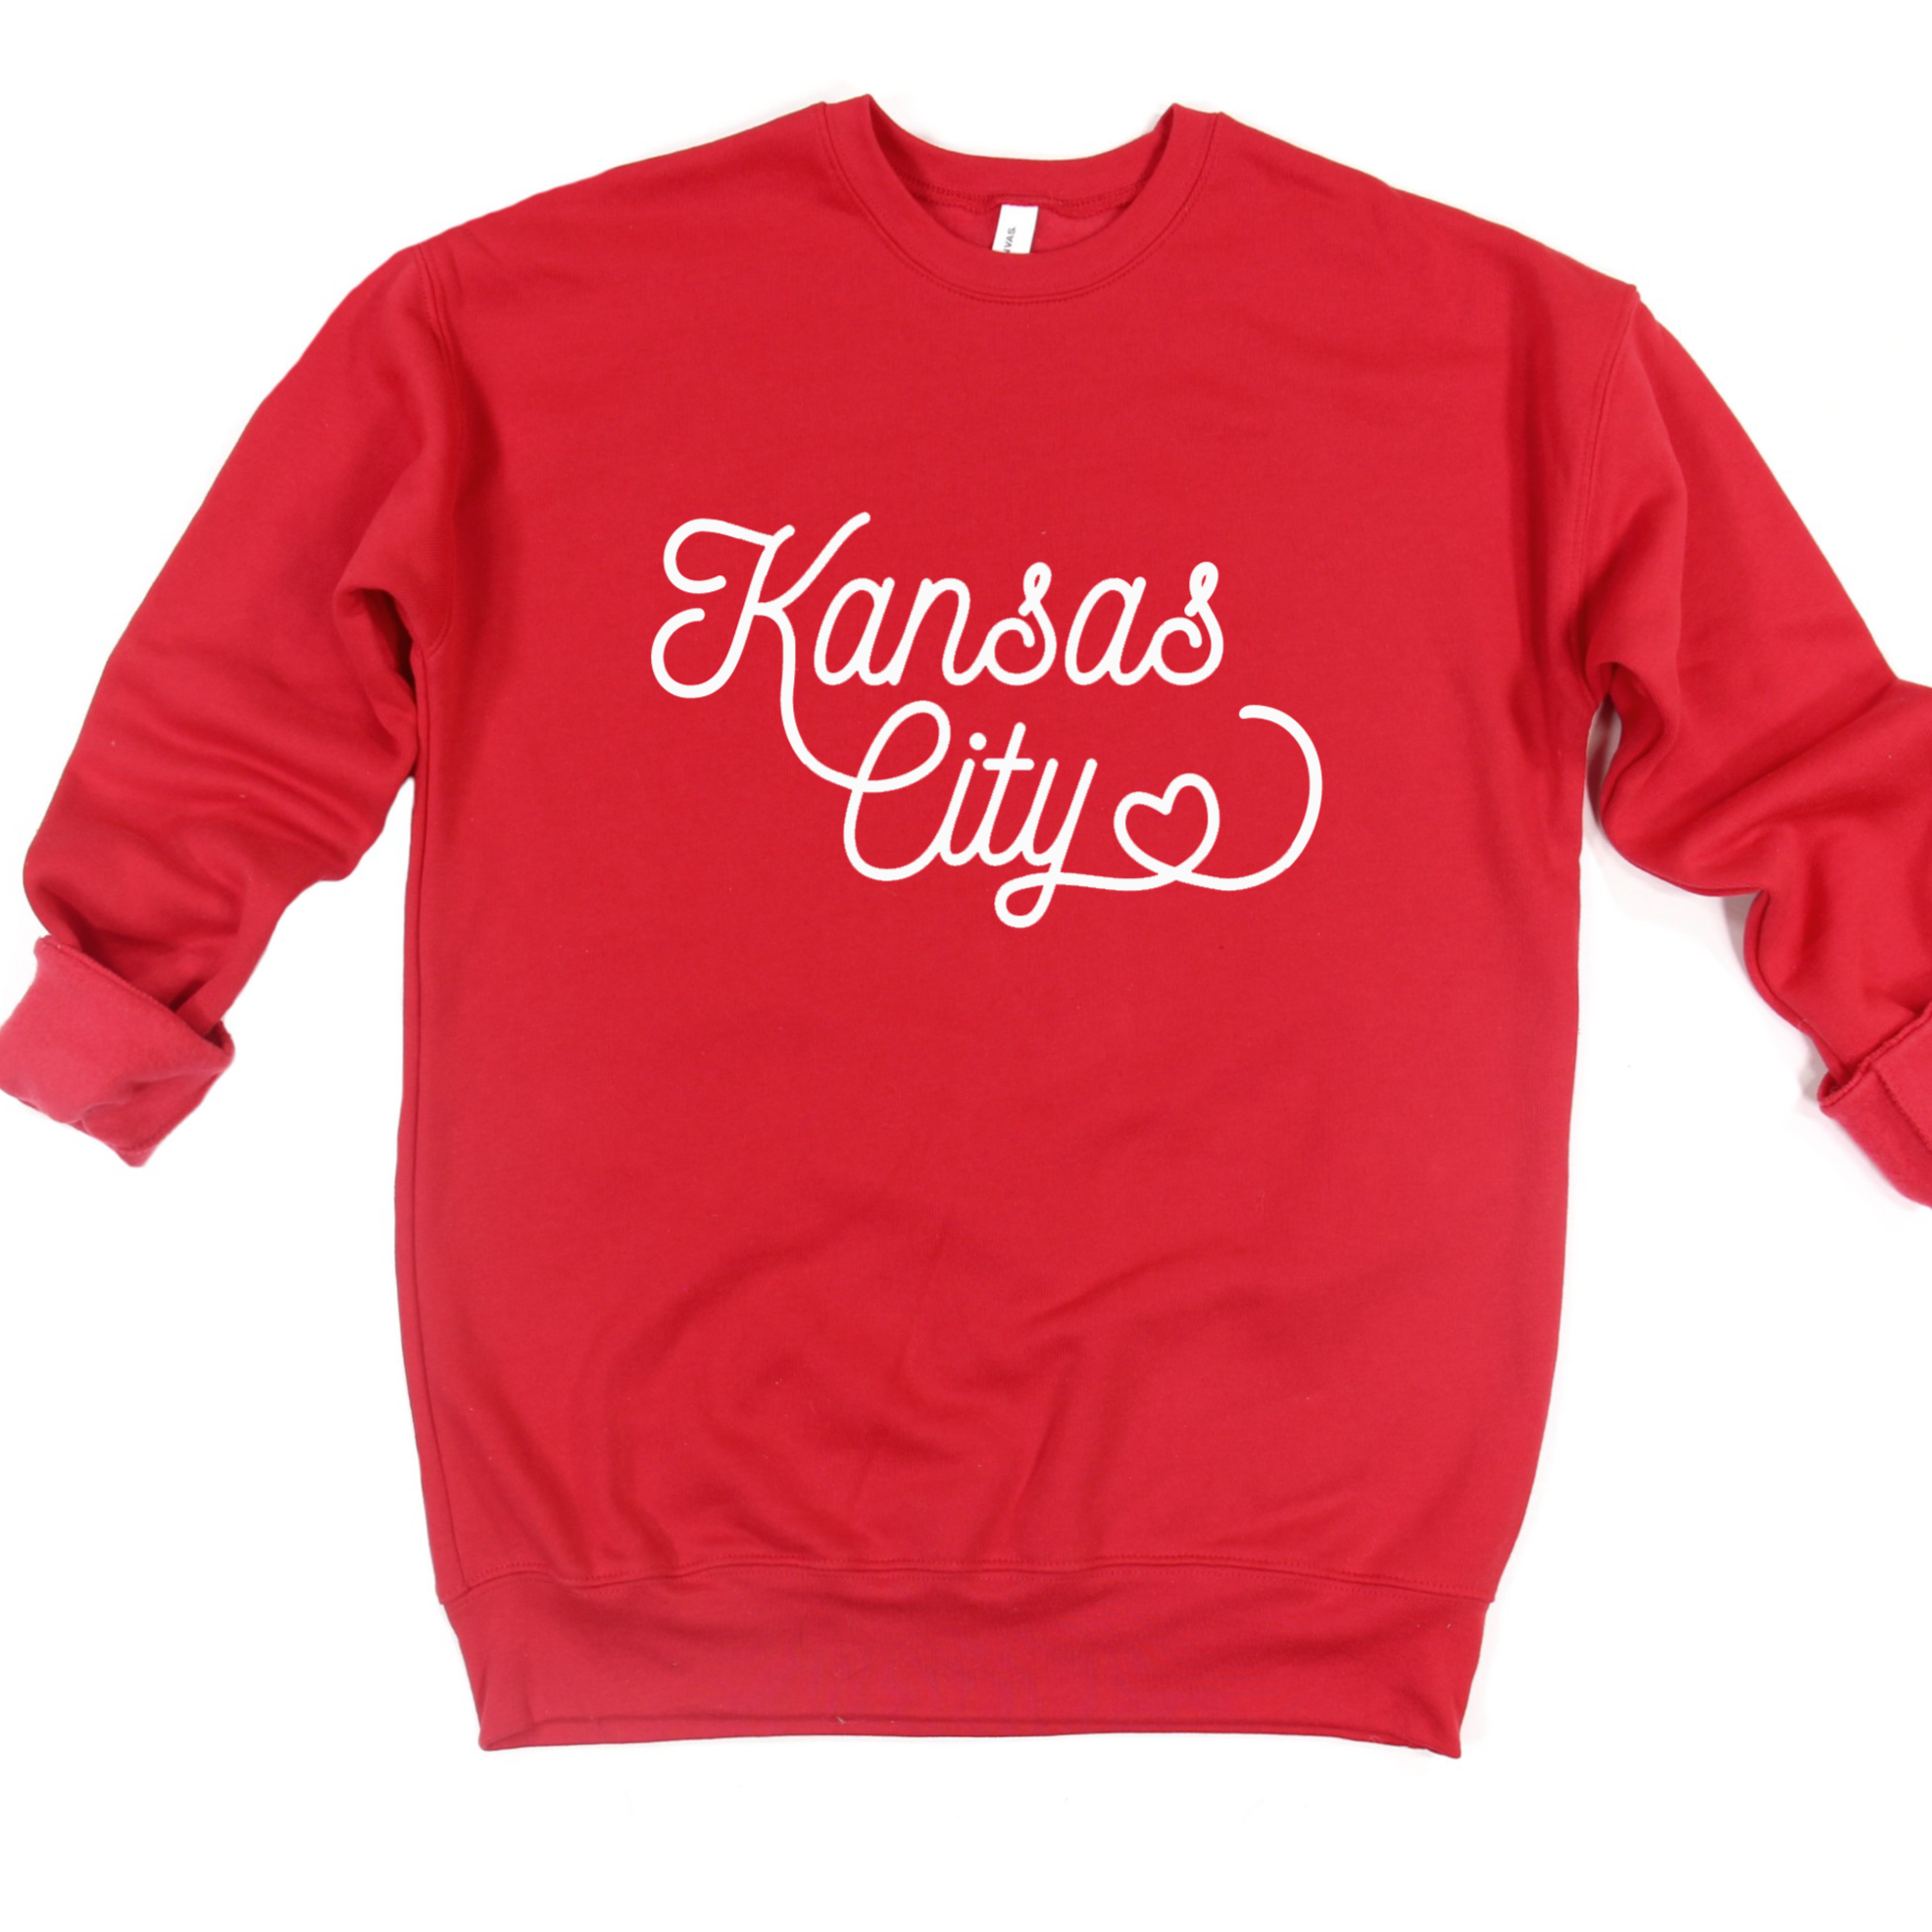 Kansas City Heart Crew or Hoodie Sweatshirt